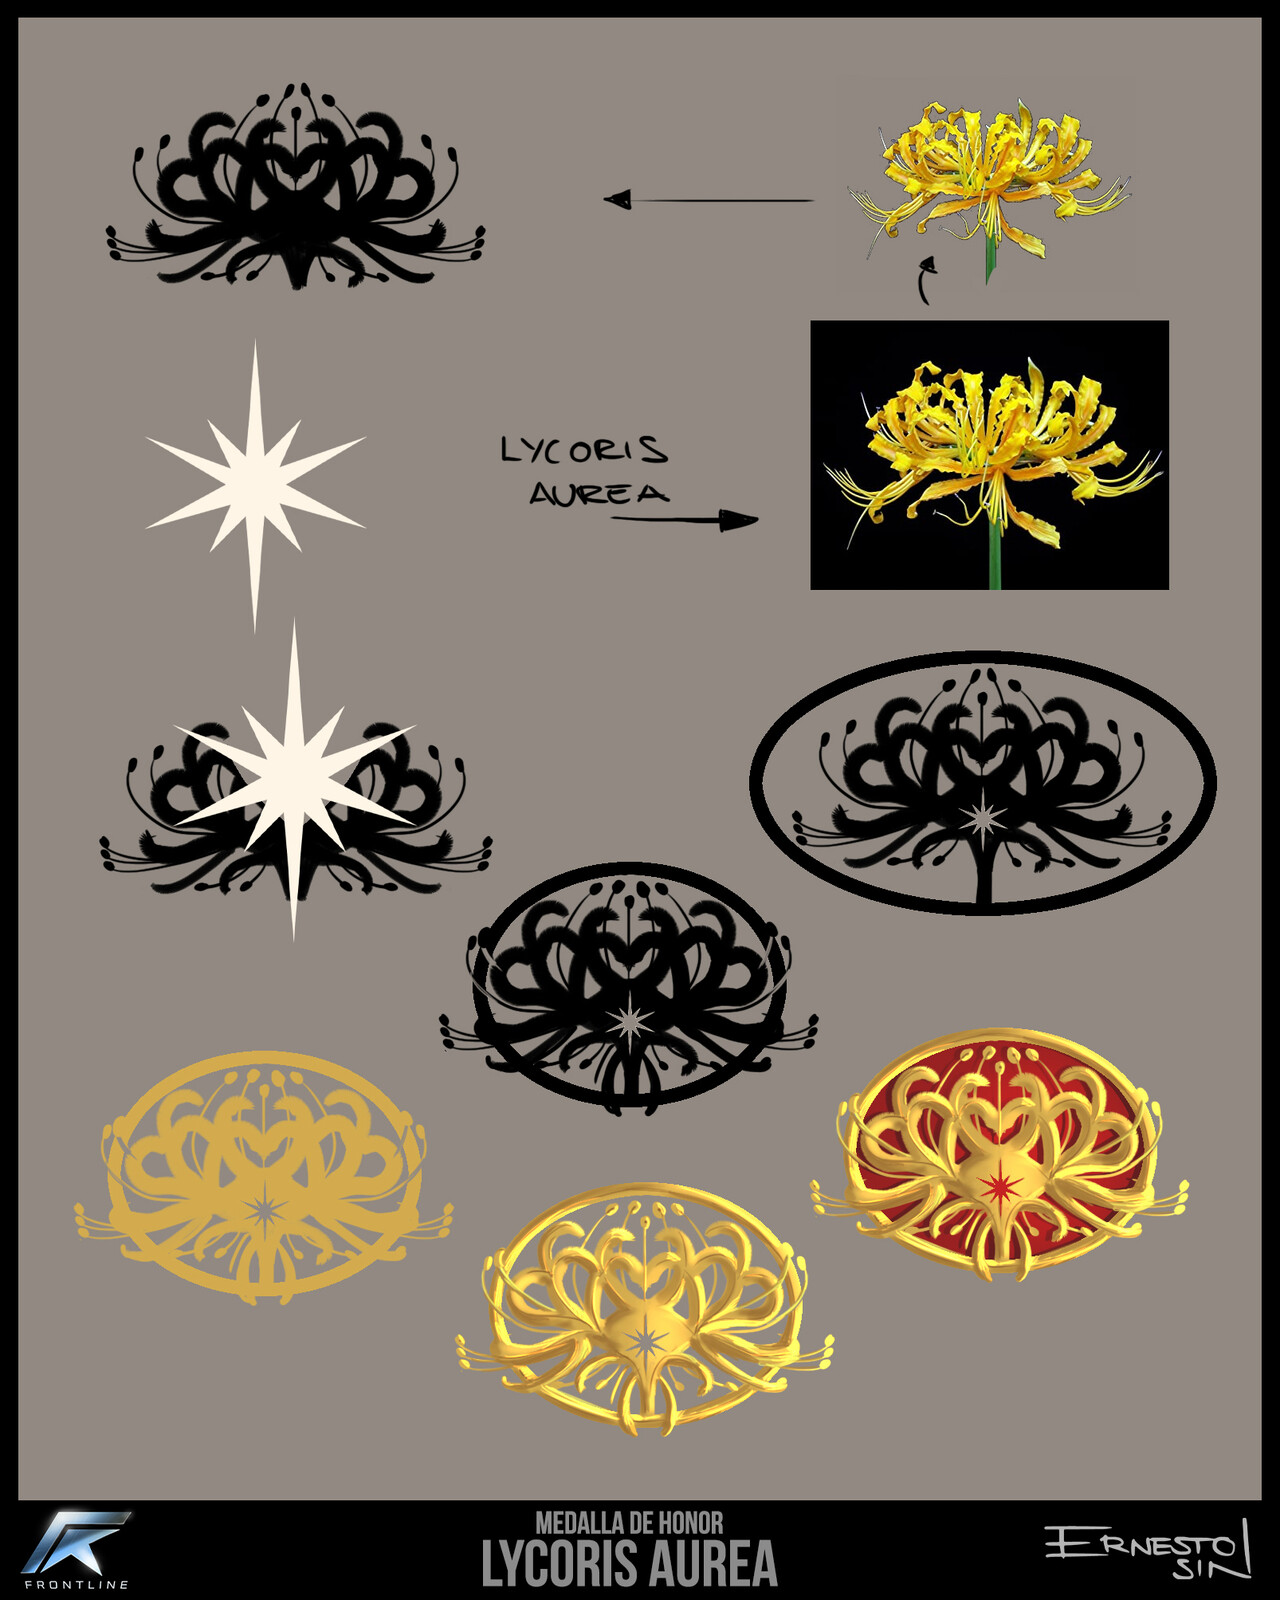 Design for the Lycoris Aurea (Yellow Spider Lily) medal of honor.